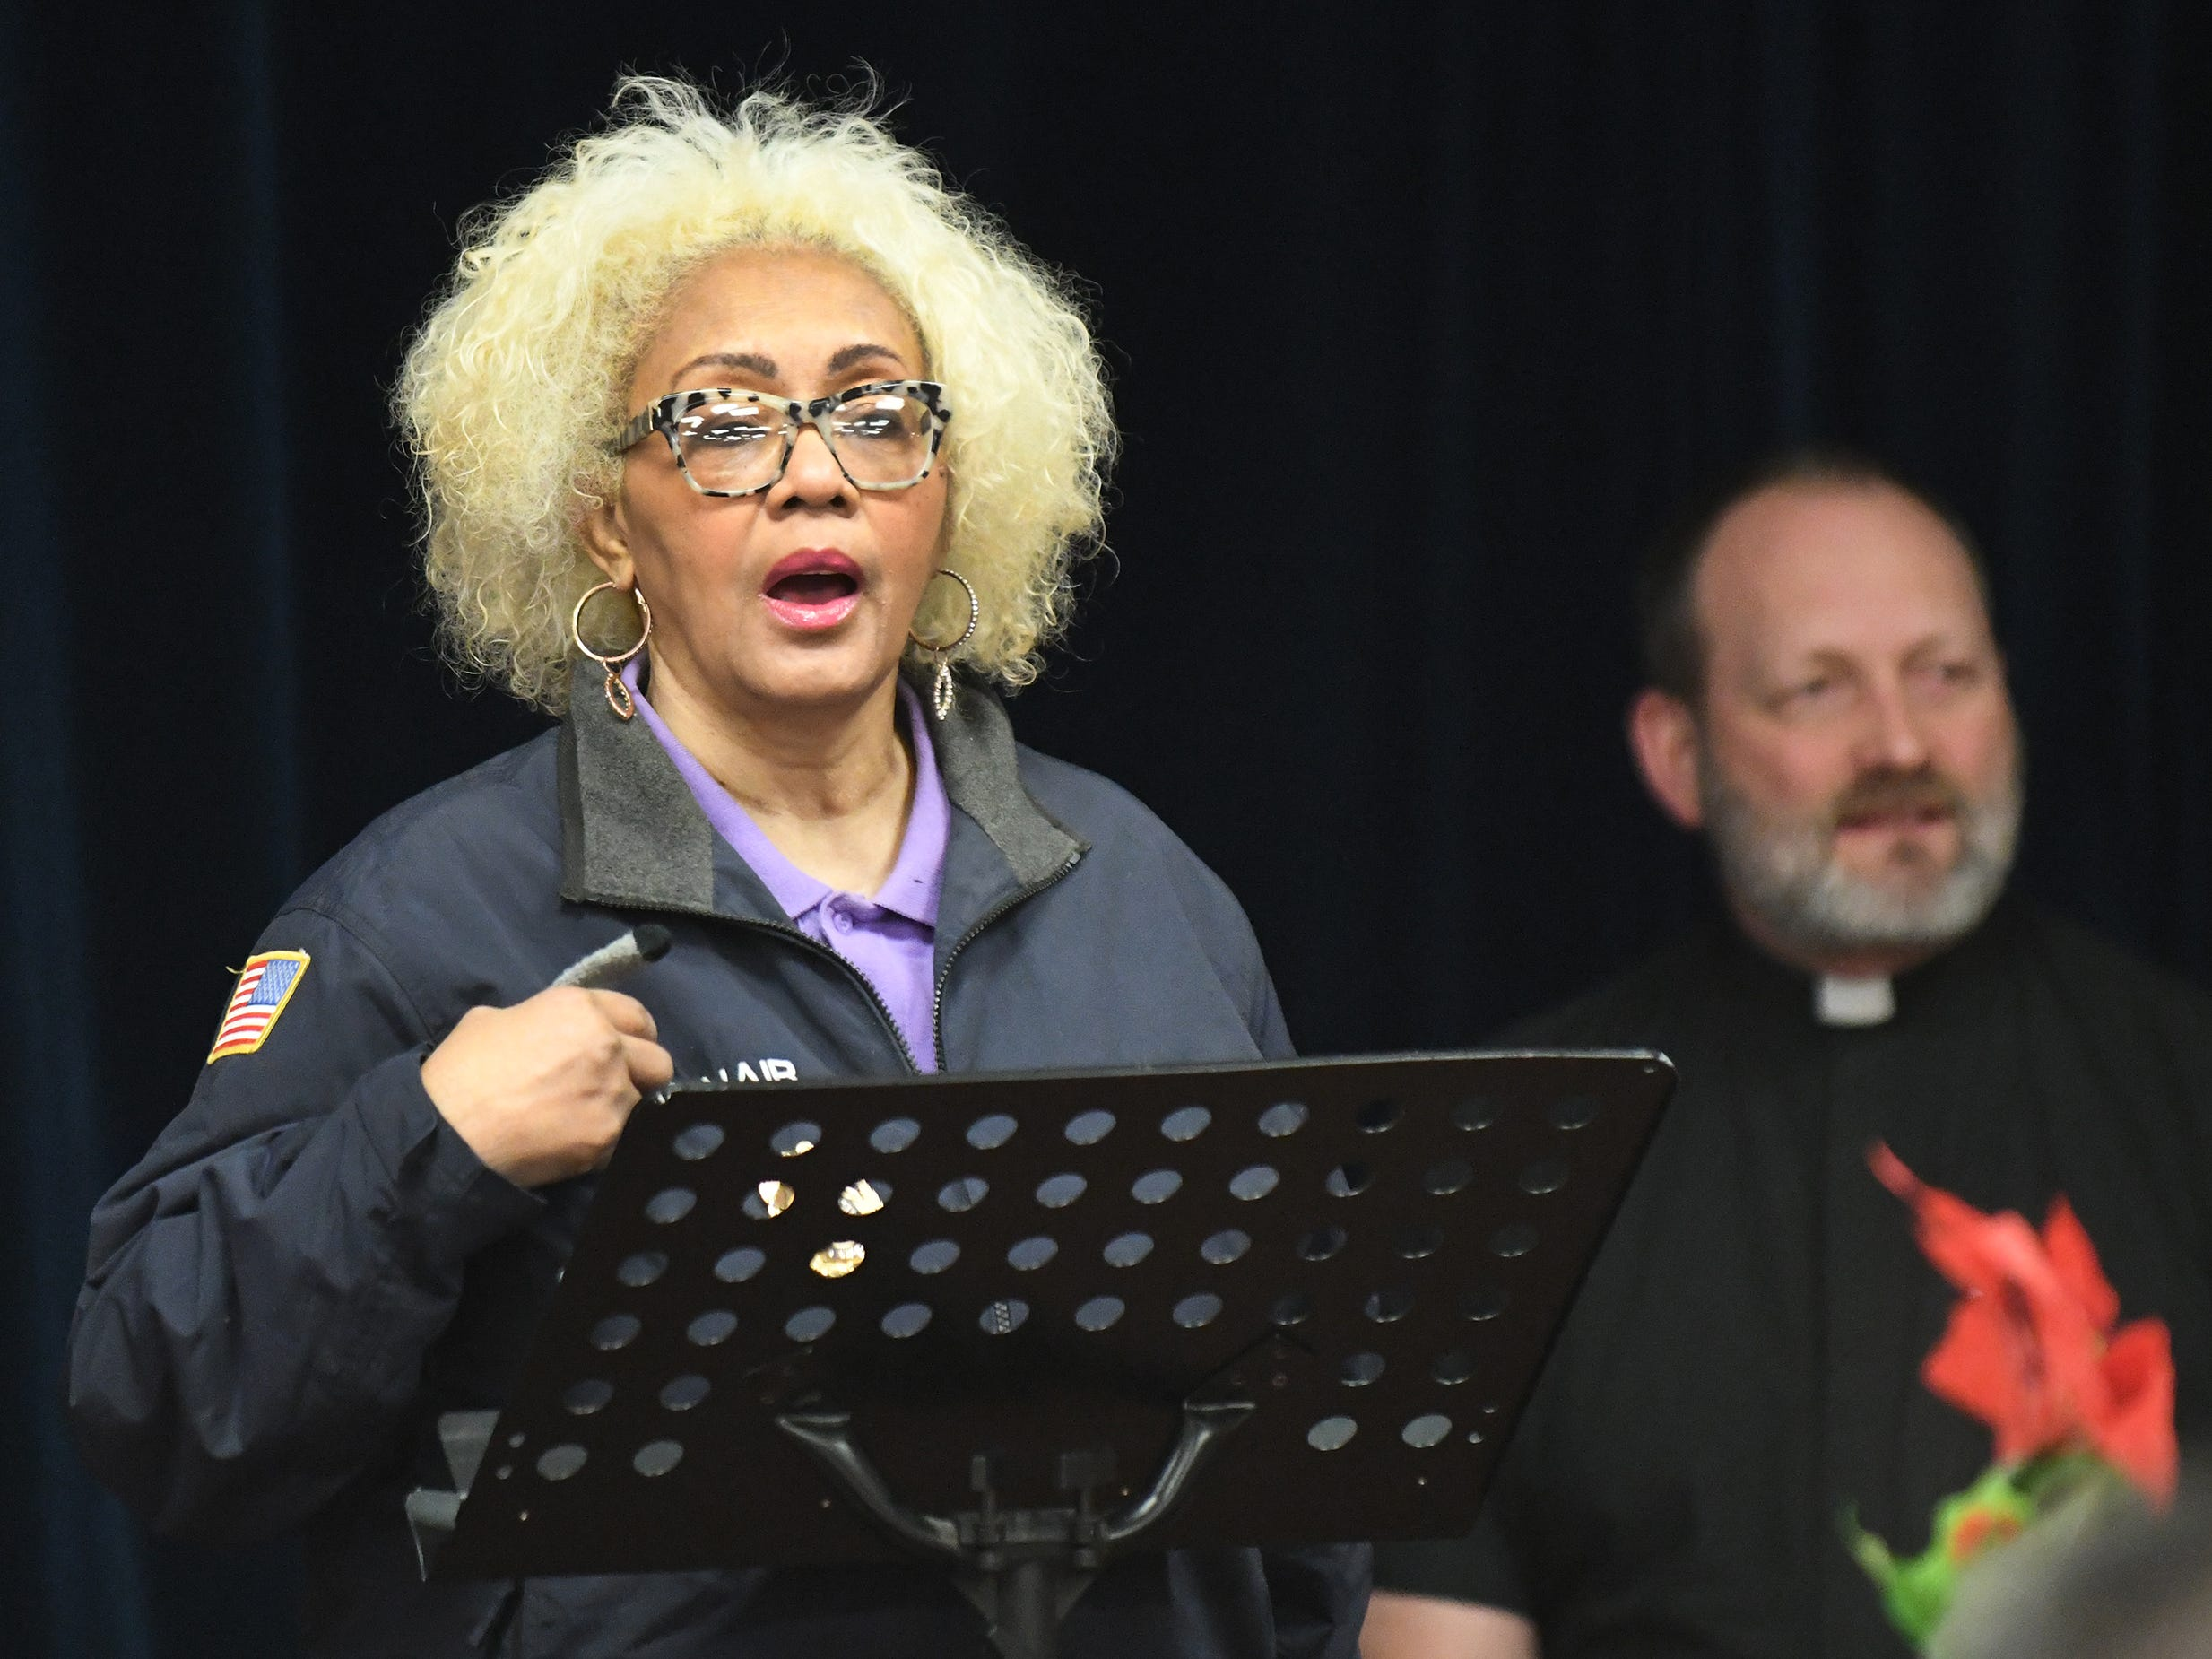 Vineland Police Chaplain Gilda I. McNair speaks during a memorial service for Jeffrey Cuss at the Spirit & Truth Ministries Soup Kitchen in Vineland on Thursday, Feb. 14, 2019.